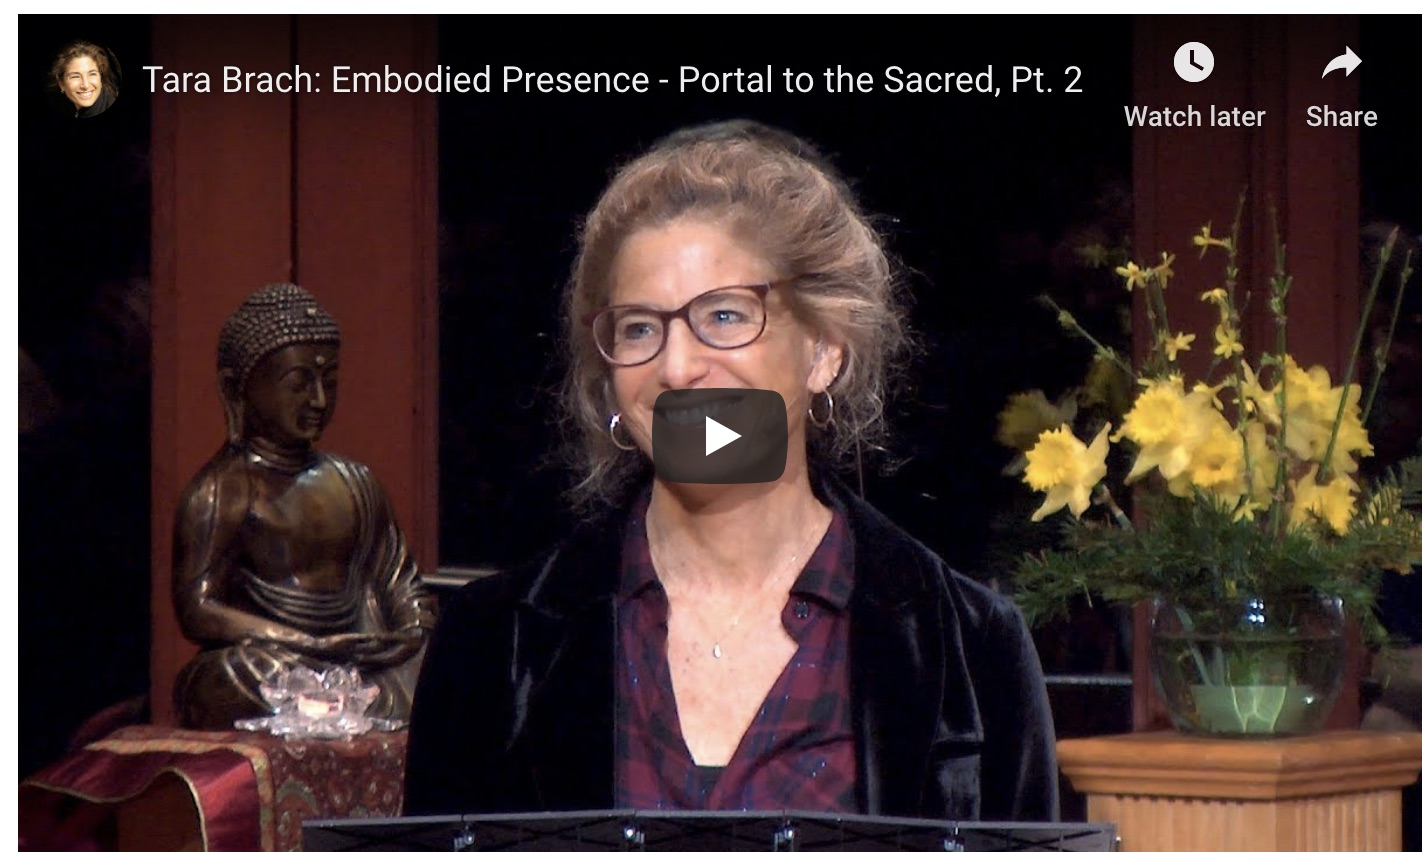 Tara Brach - Embodied presence - portal to the sacred 2 screenshot